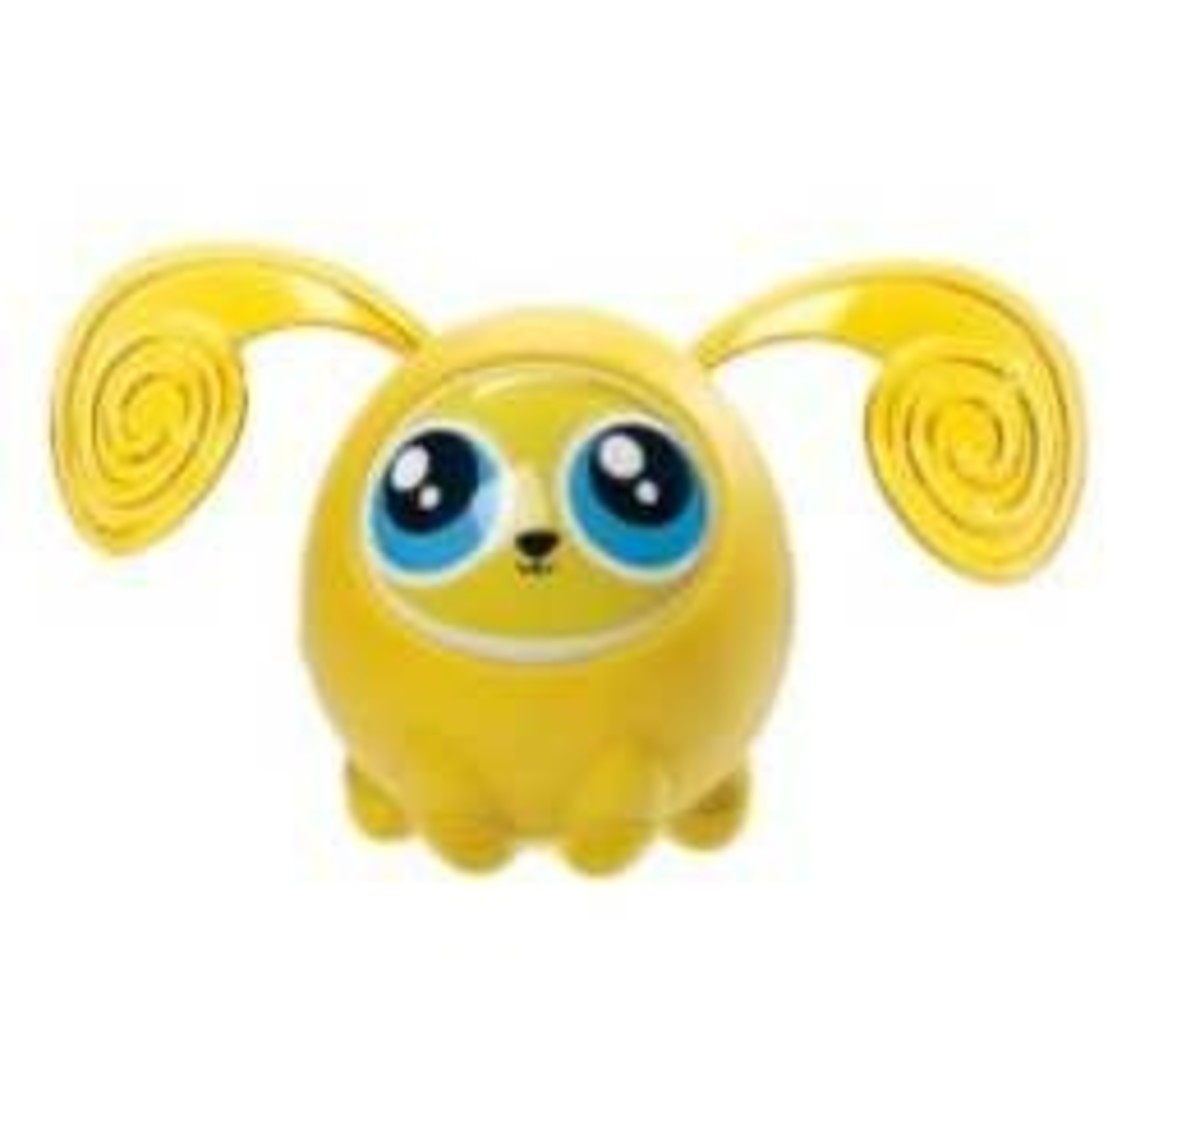 buy-fijit-friends-interactive-toys-online-prices-names-cheapest-deals